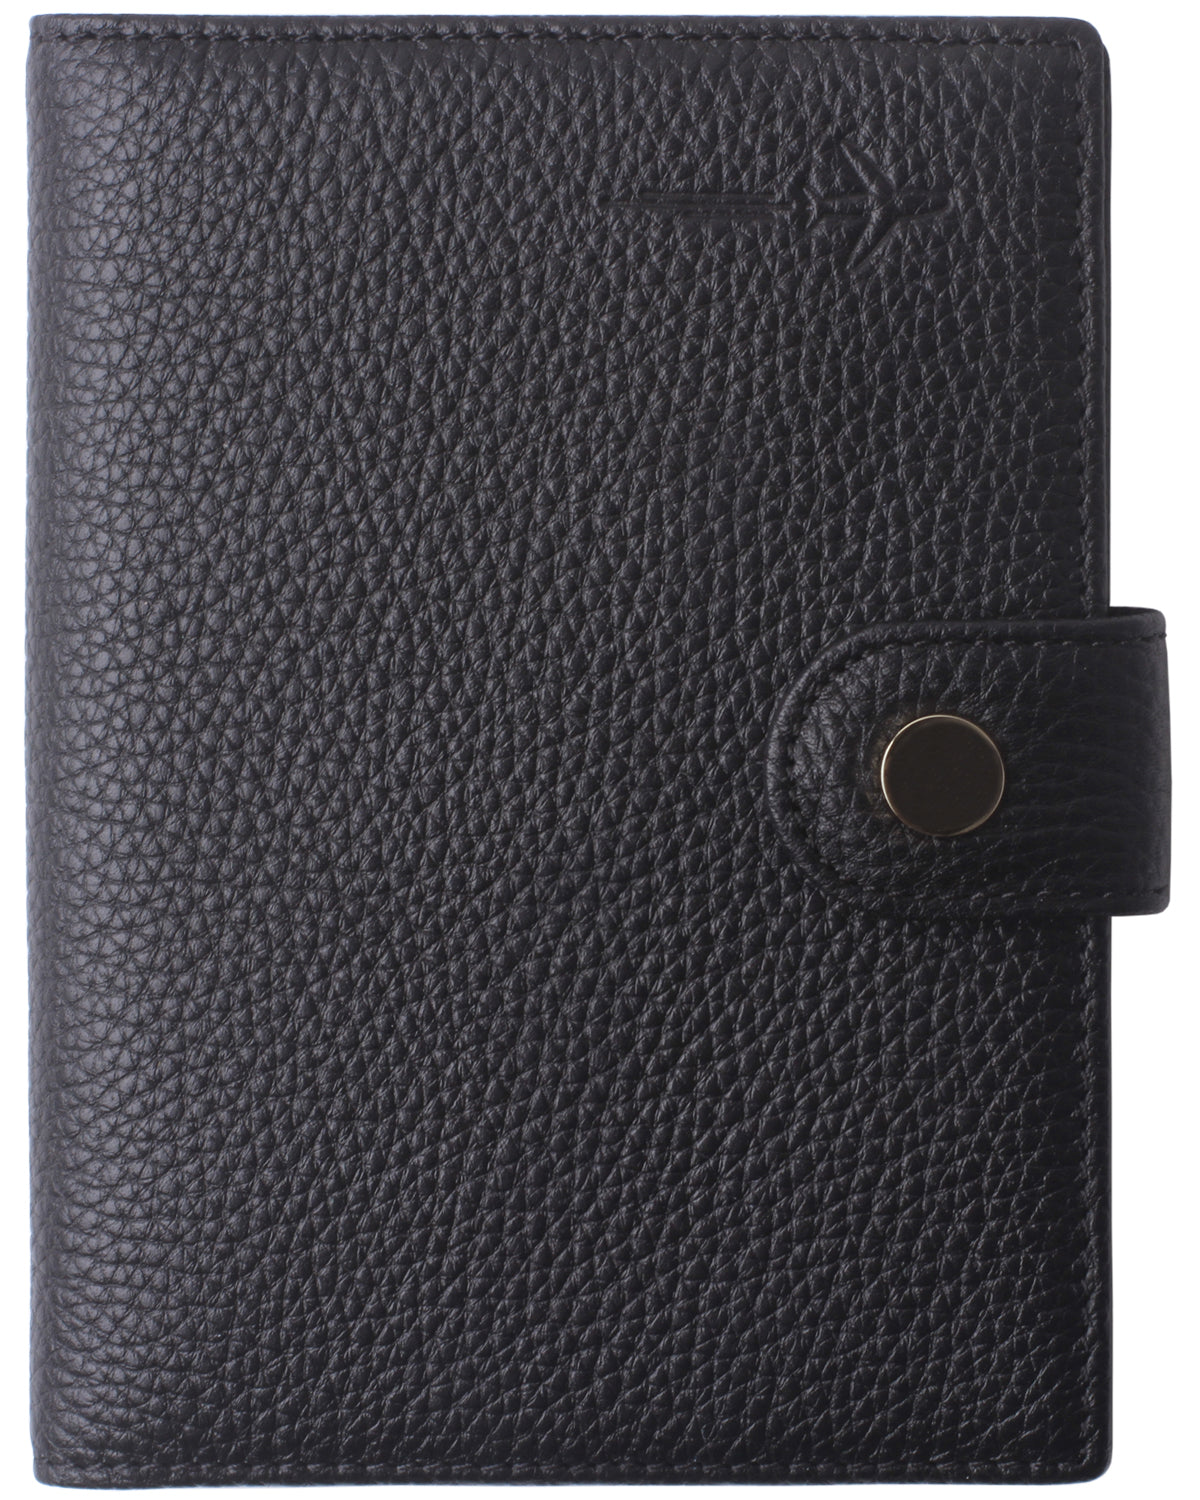 Leather Rfid Blocking Travel Passport Holder Cover Slim ID Card Case Wallet Crosshatch BG1233 Limited Black - Borgasets